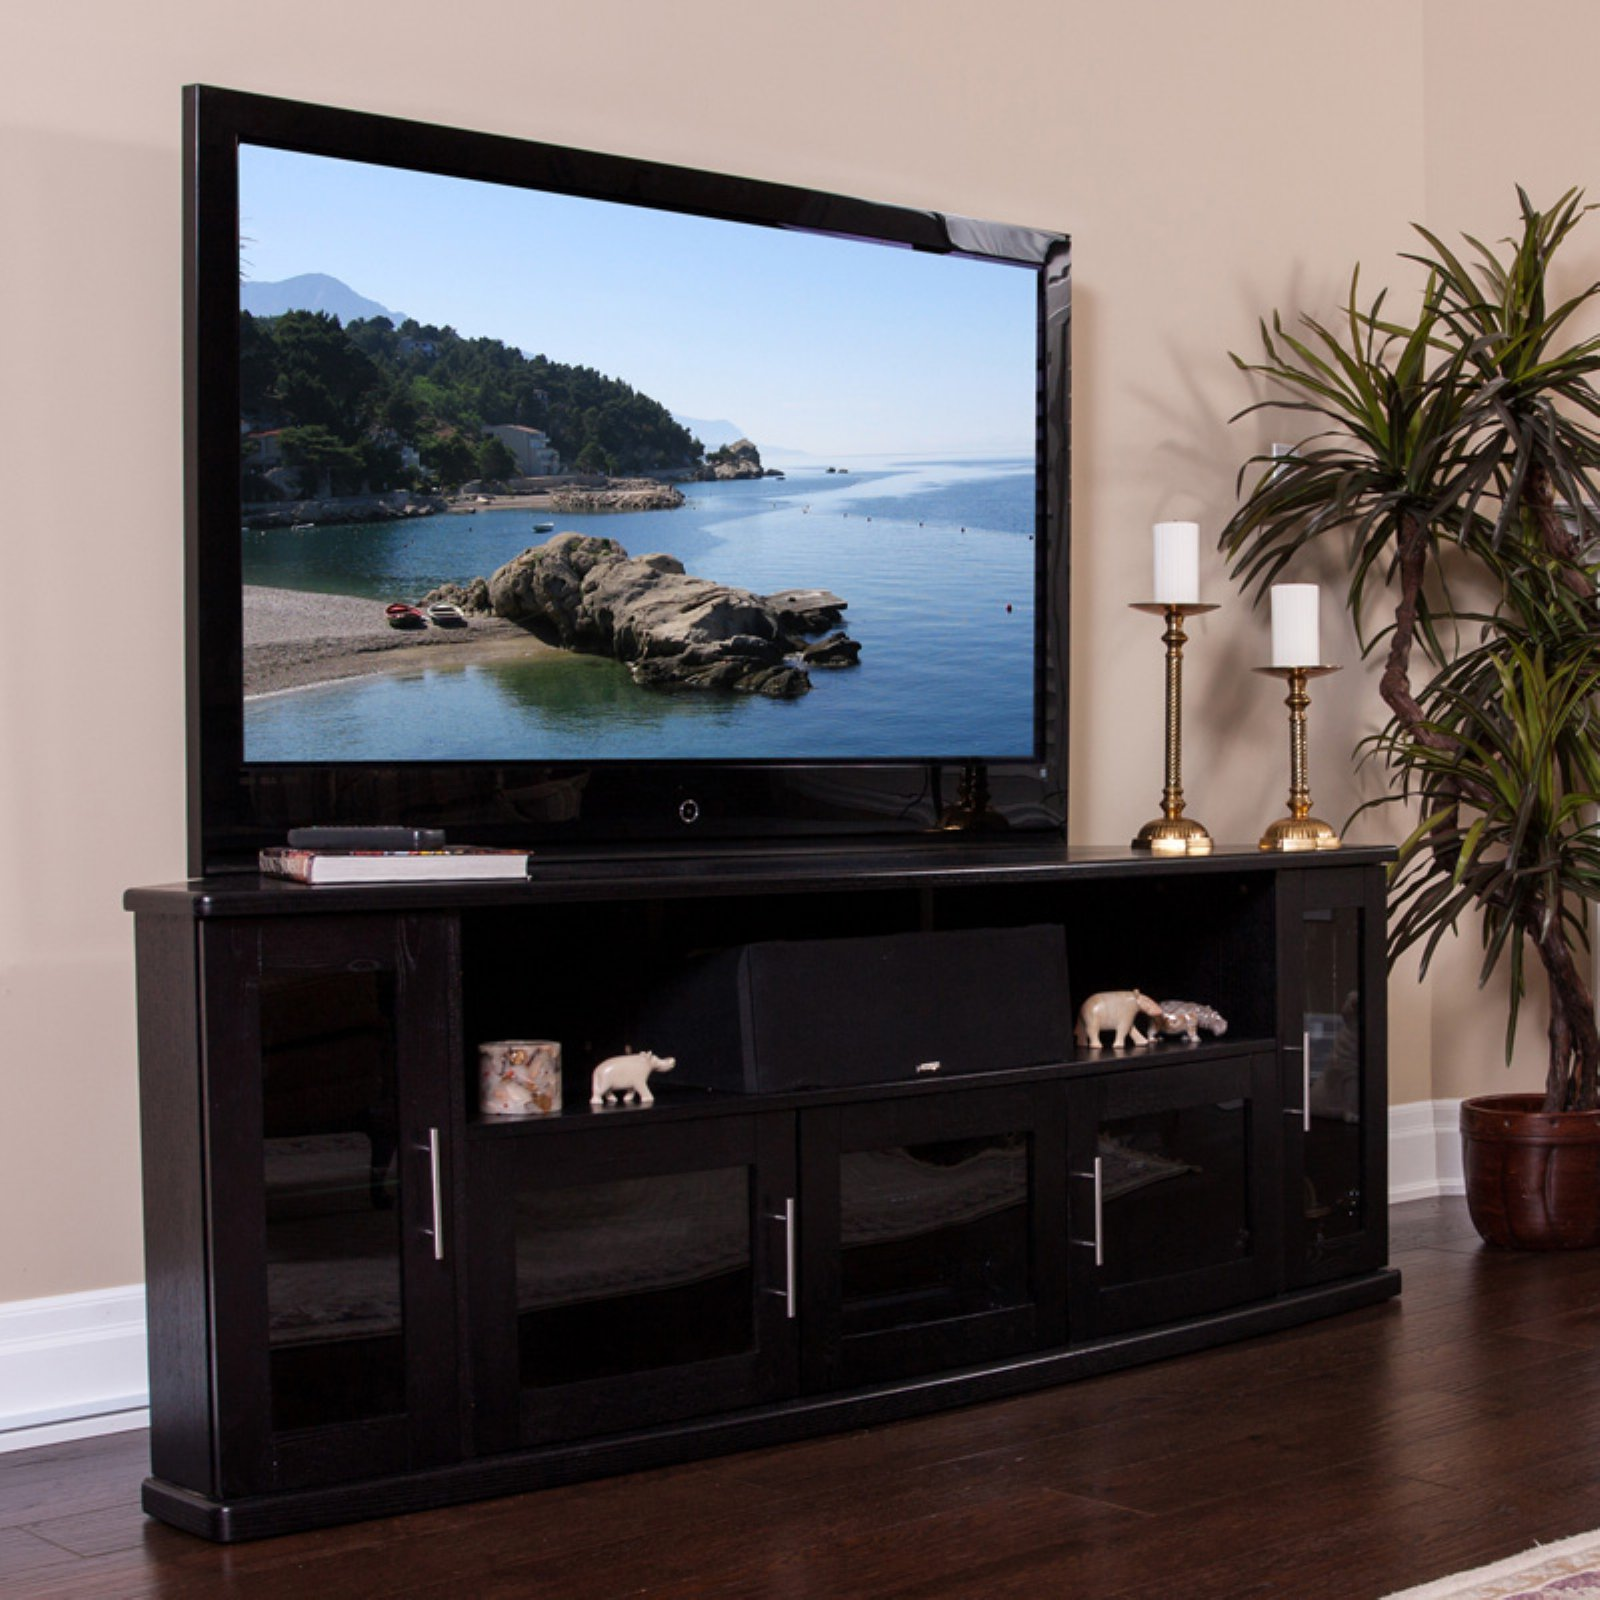 Plateau Newport 80 in. Corner Wood TV Stand - Black Oak Finish